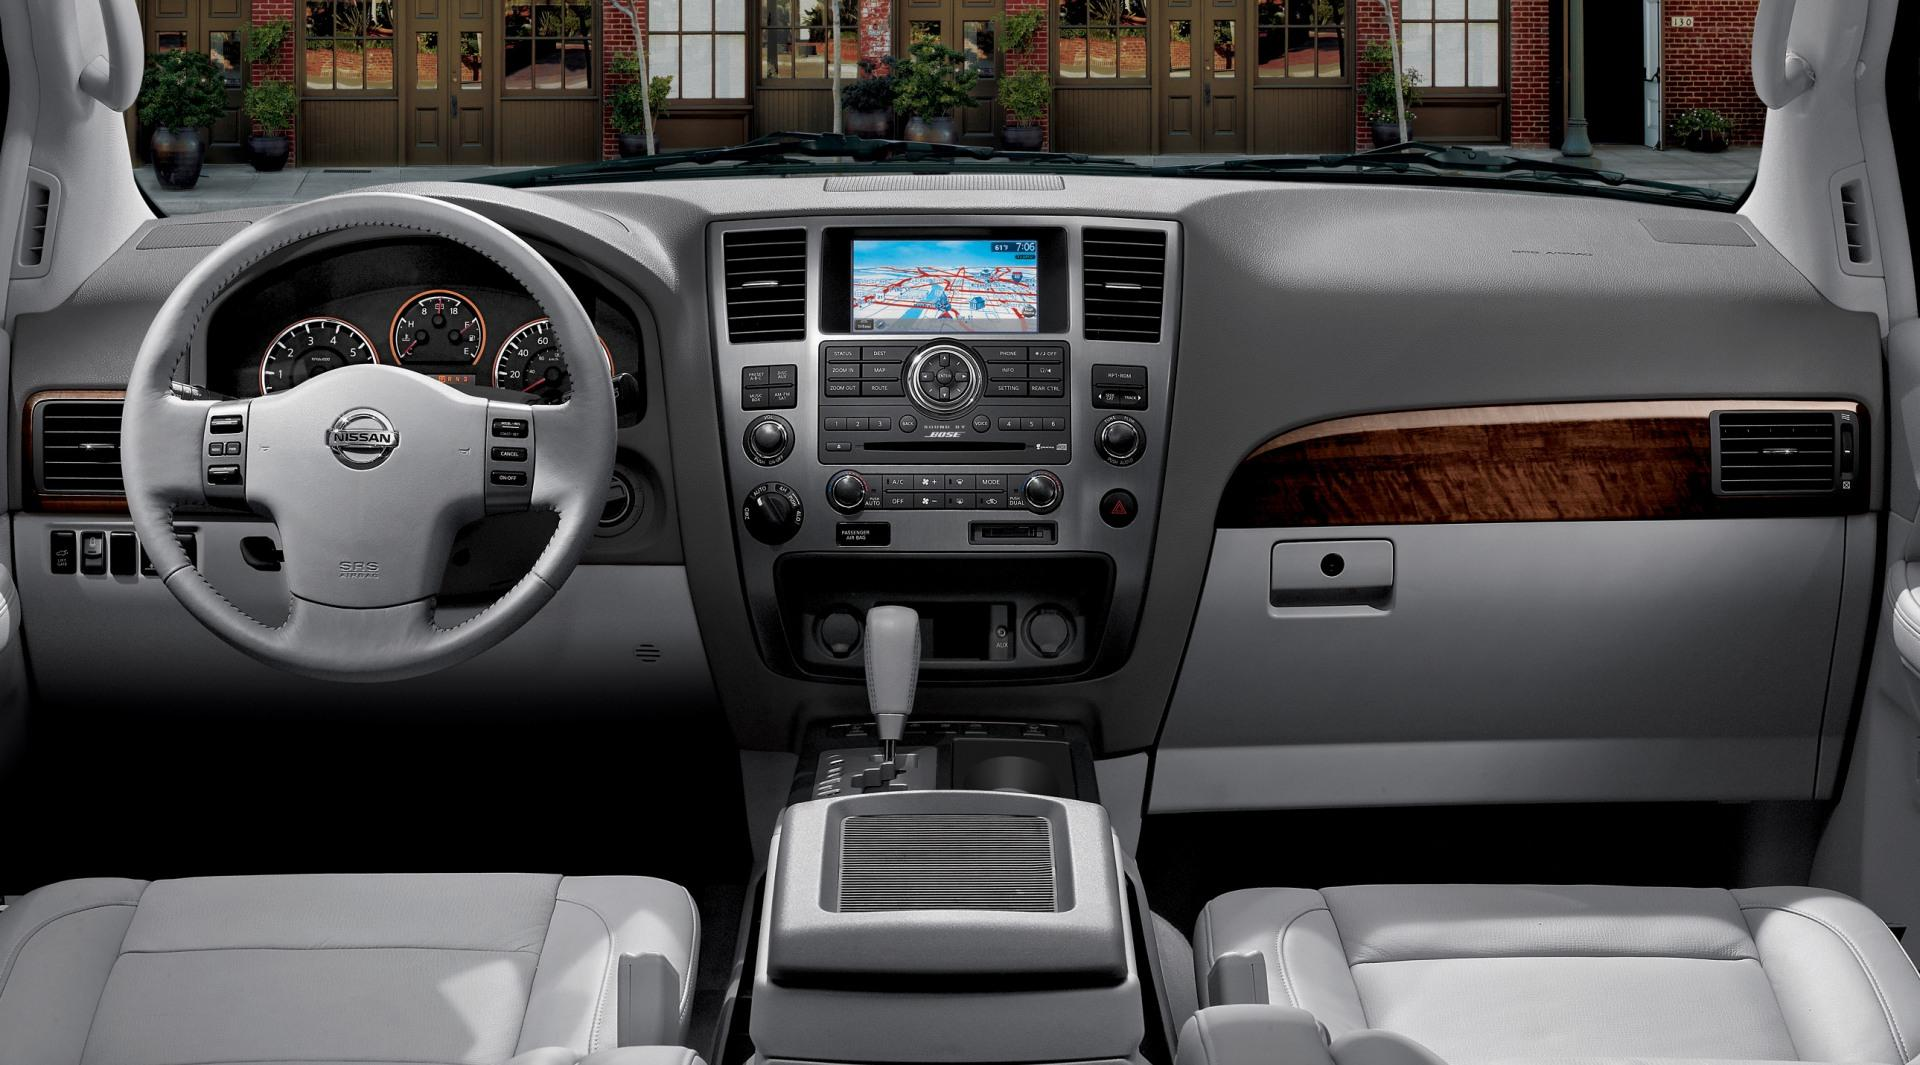 2011 Nissan Armada Information And Photos Zombiedrive